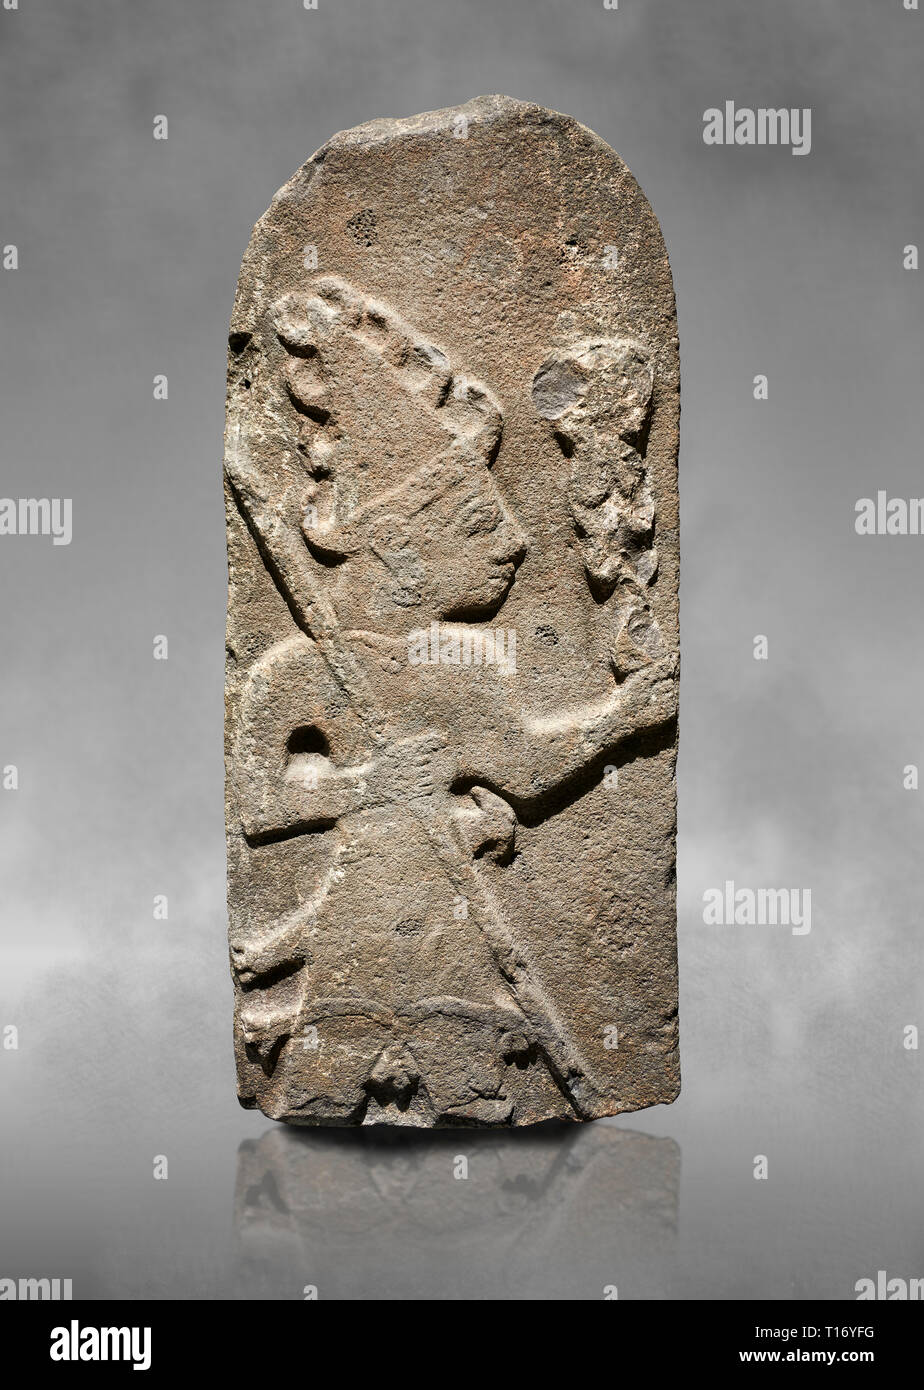 Hittite monumental relief sculpture ofa God probably holding lightning rods. Late Hittite Period - 900-700 BC. Adana Archaeology Museum, Turkey. Again Stock Photo